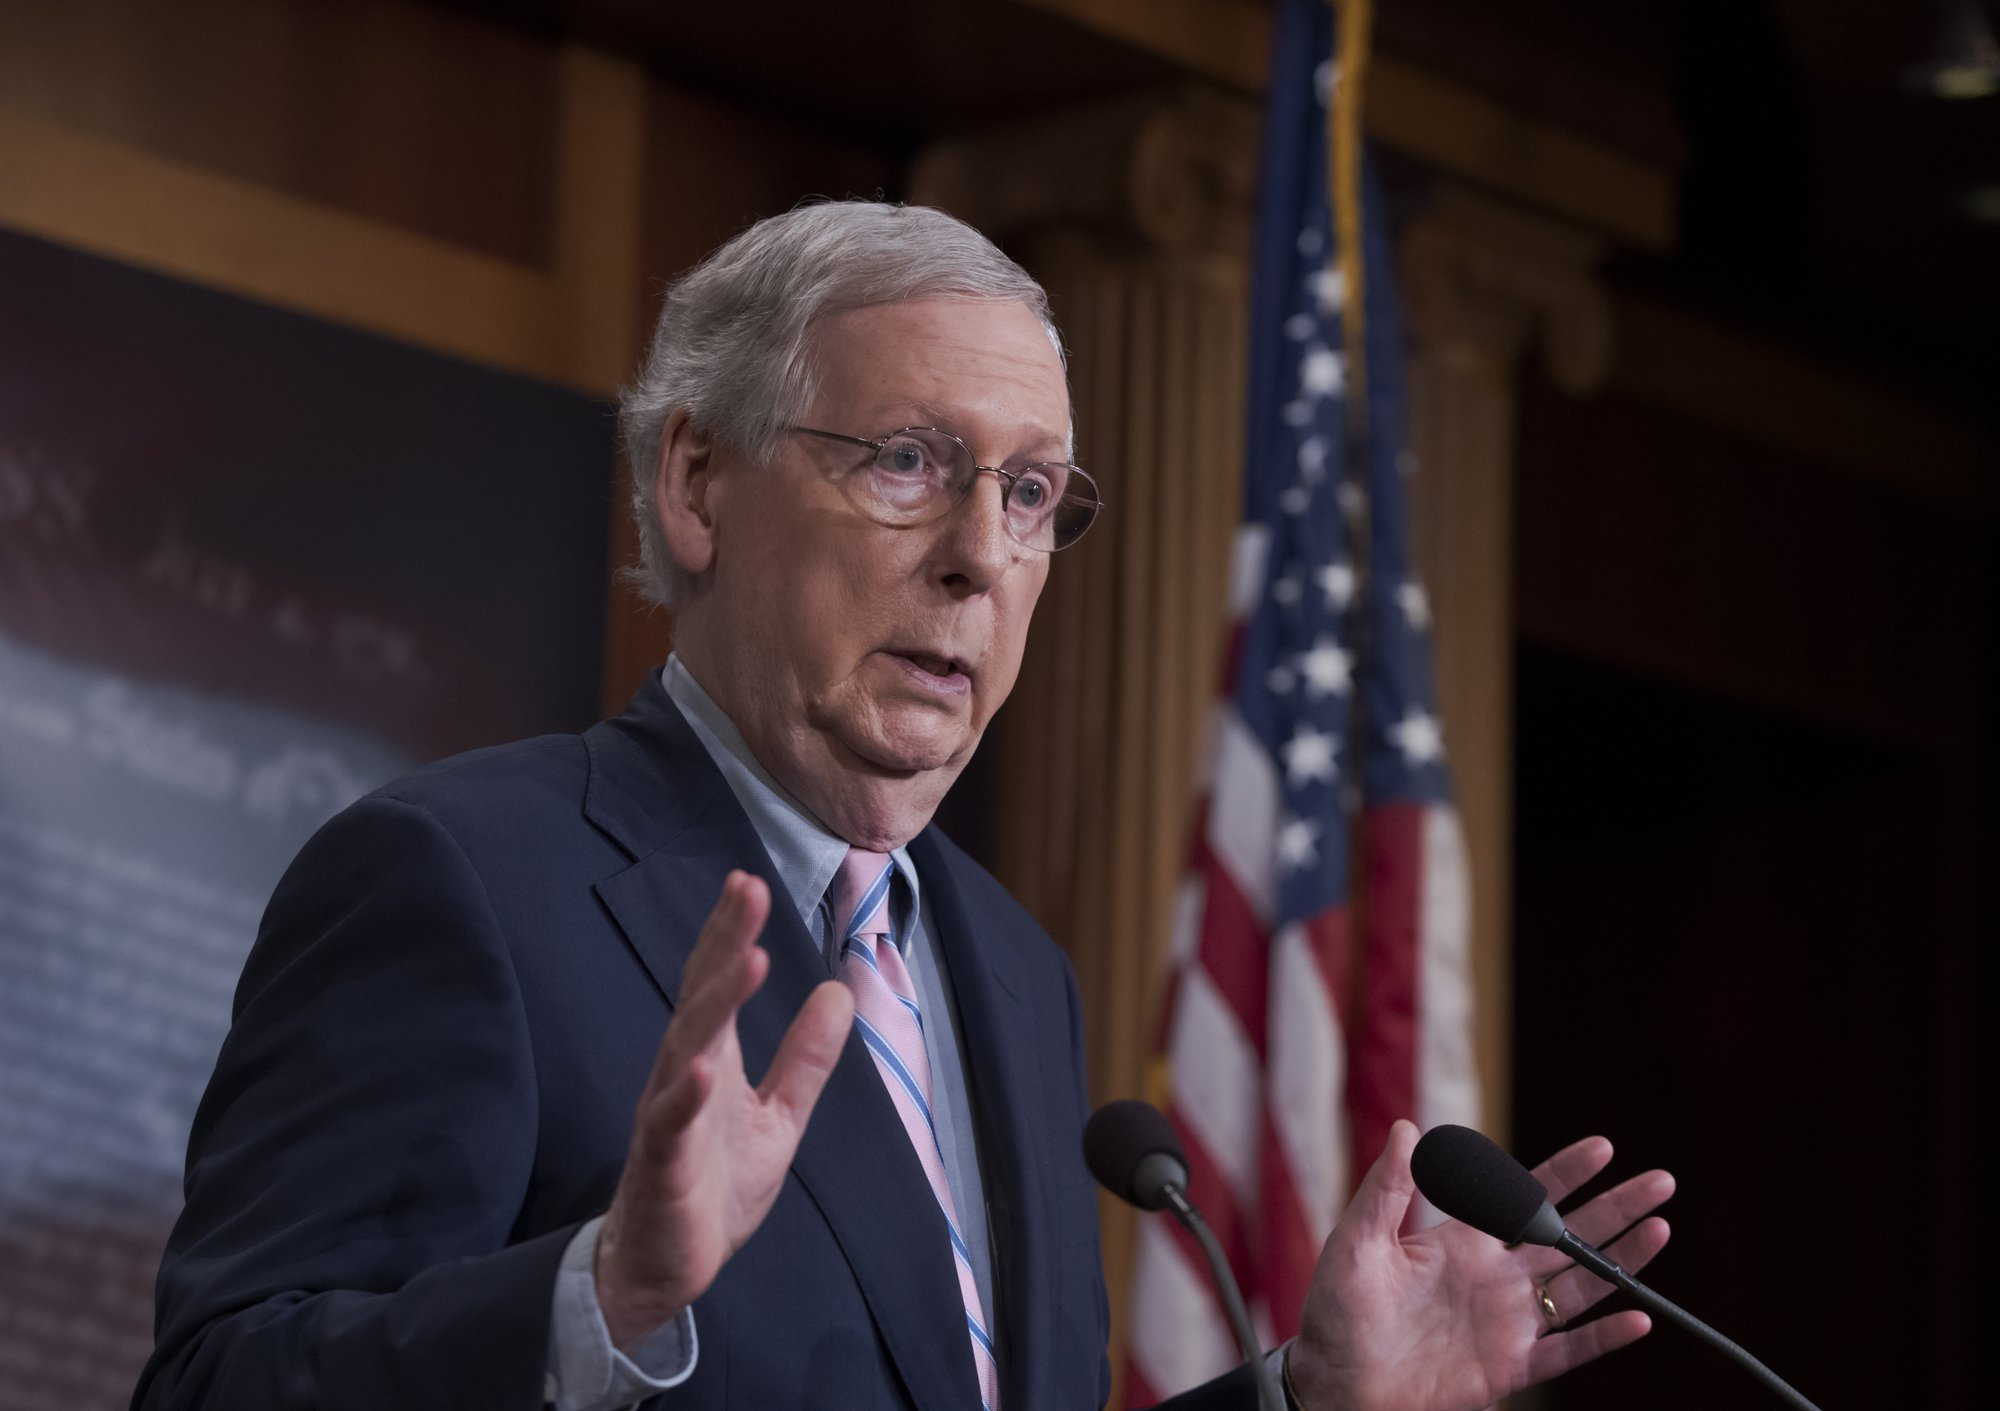 The Latest Gop Senate Could Act On 2020 High Court Nominee